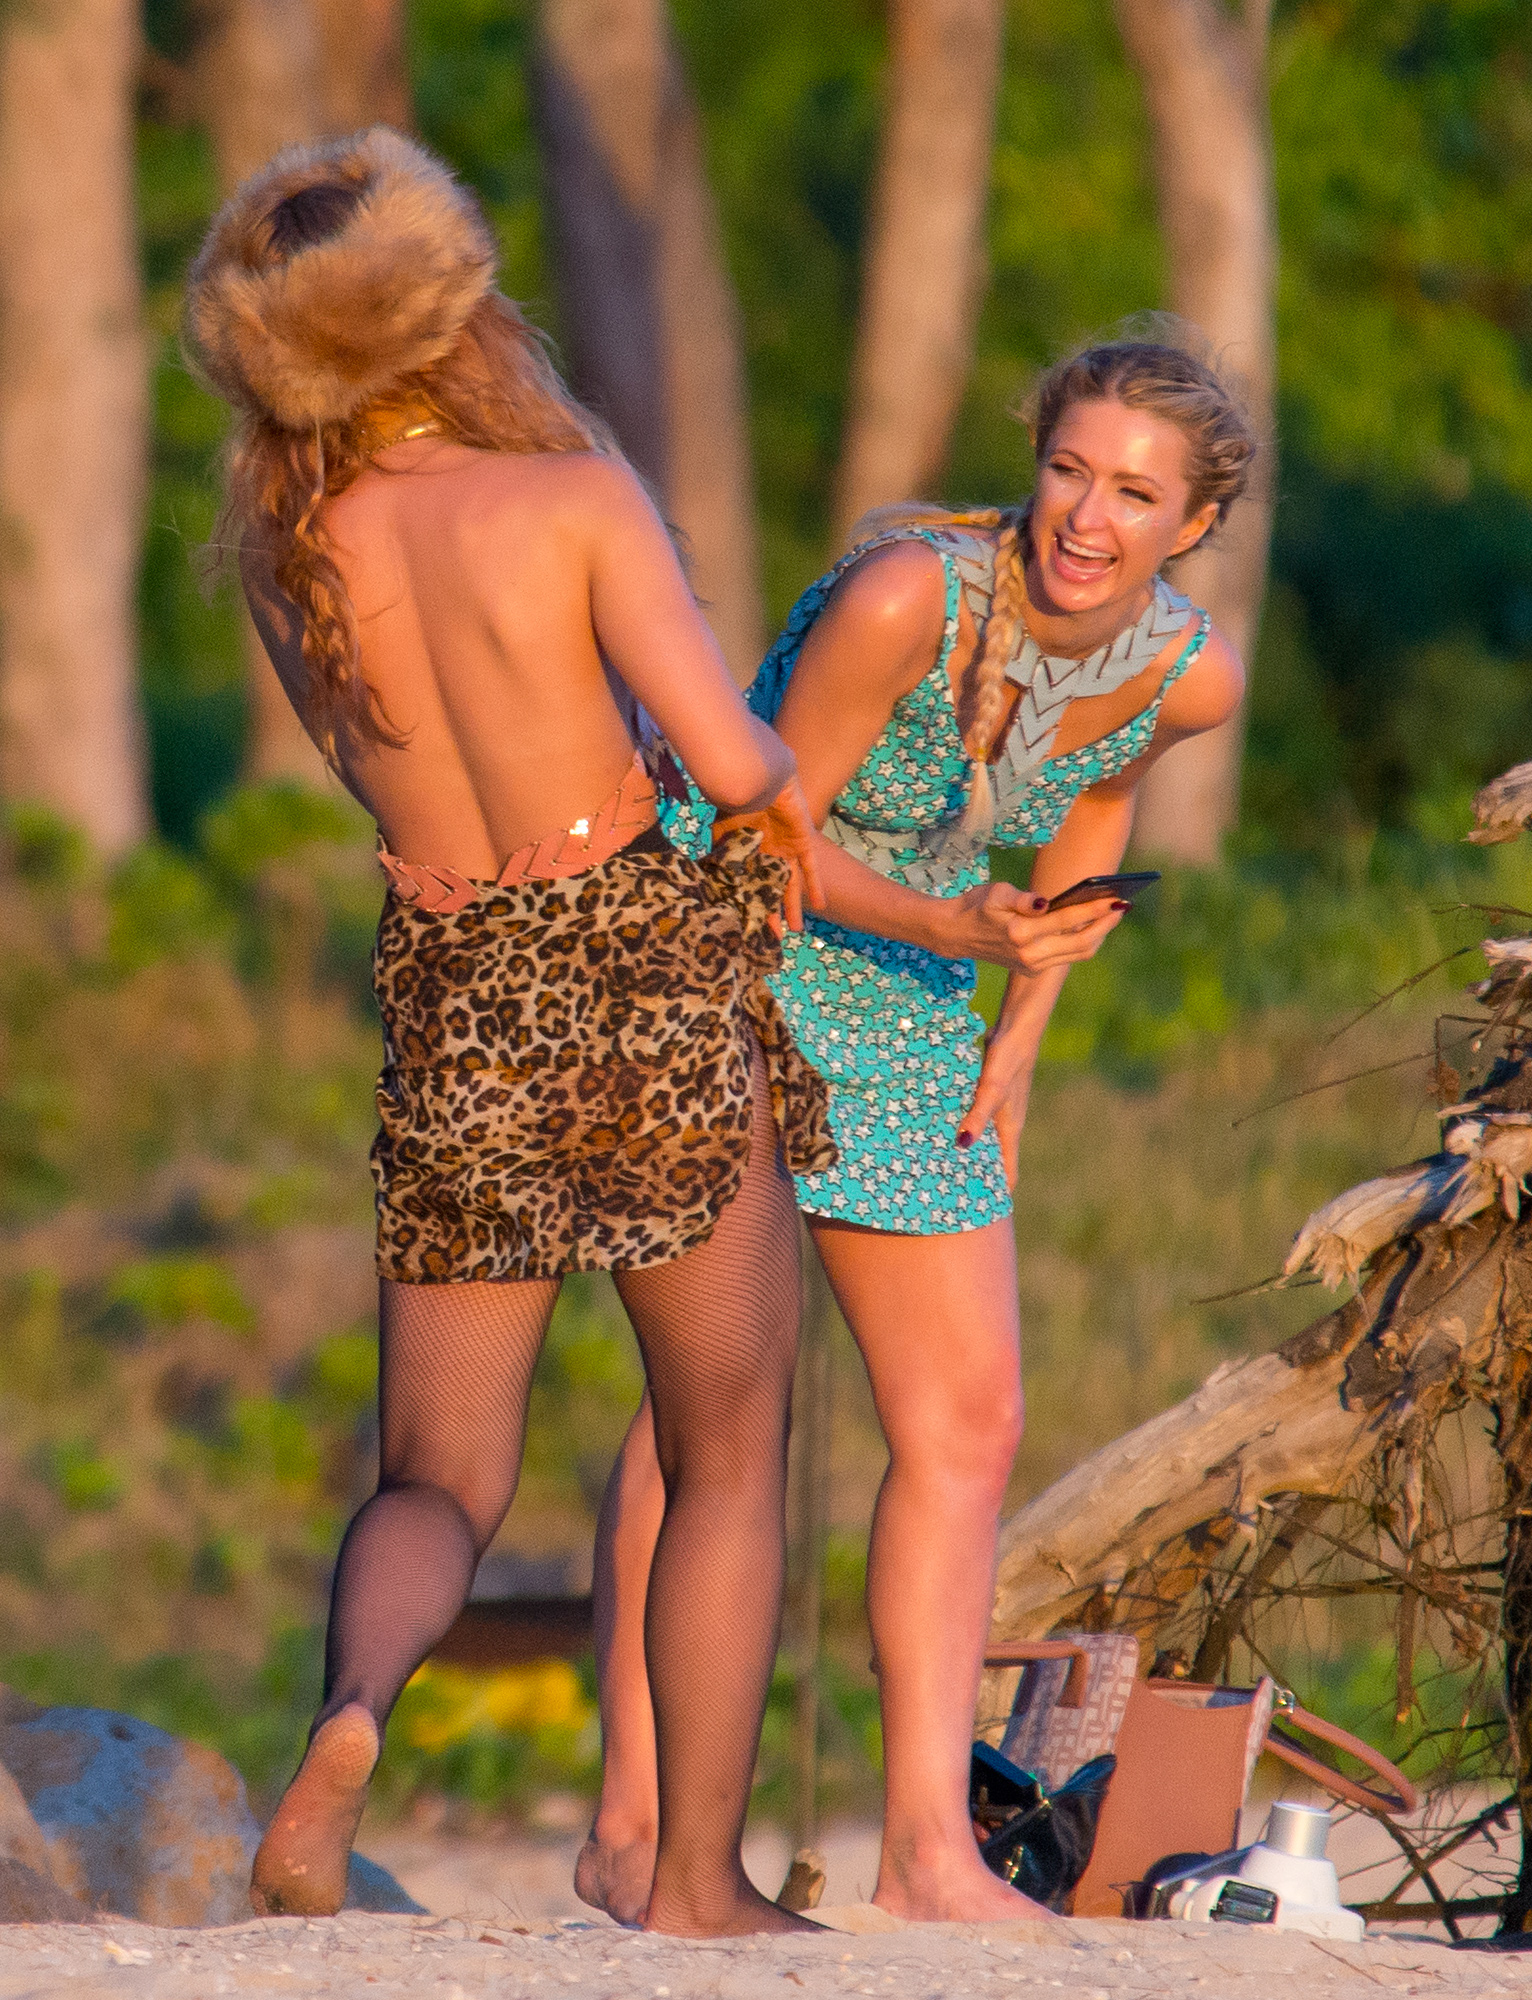 EXCLUSIVE: Paris Hilton and friend have photoshoot at sunset